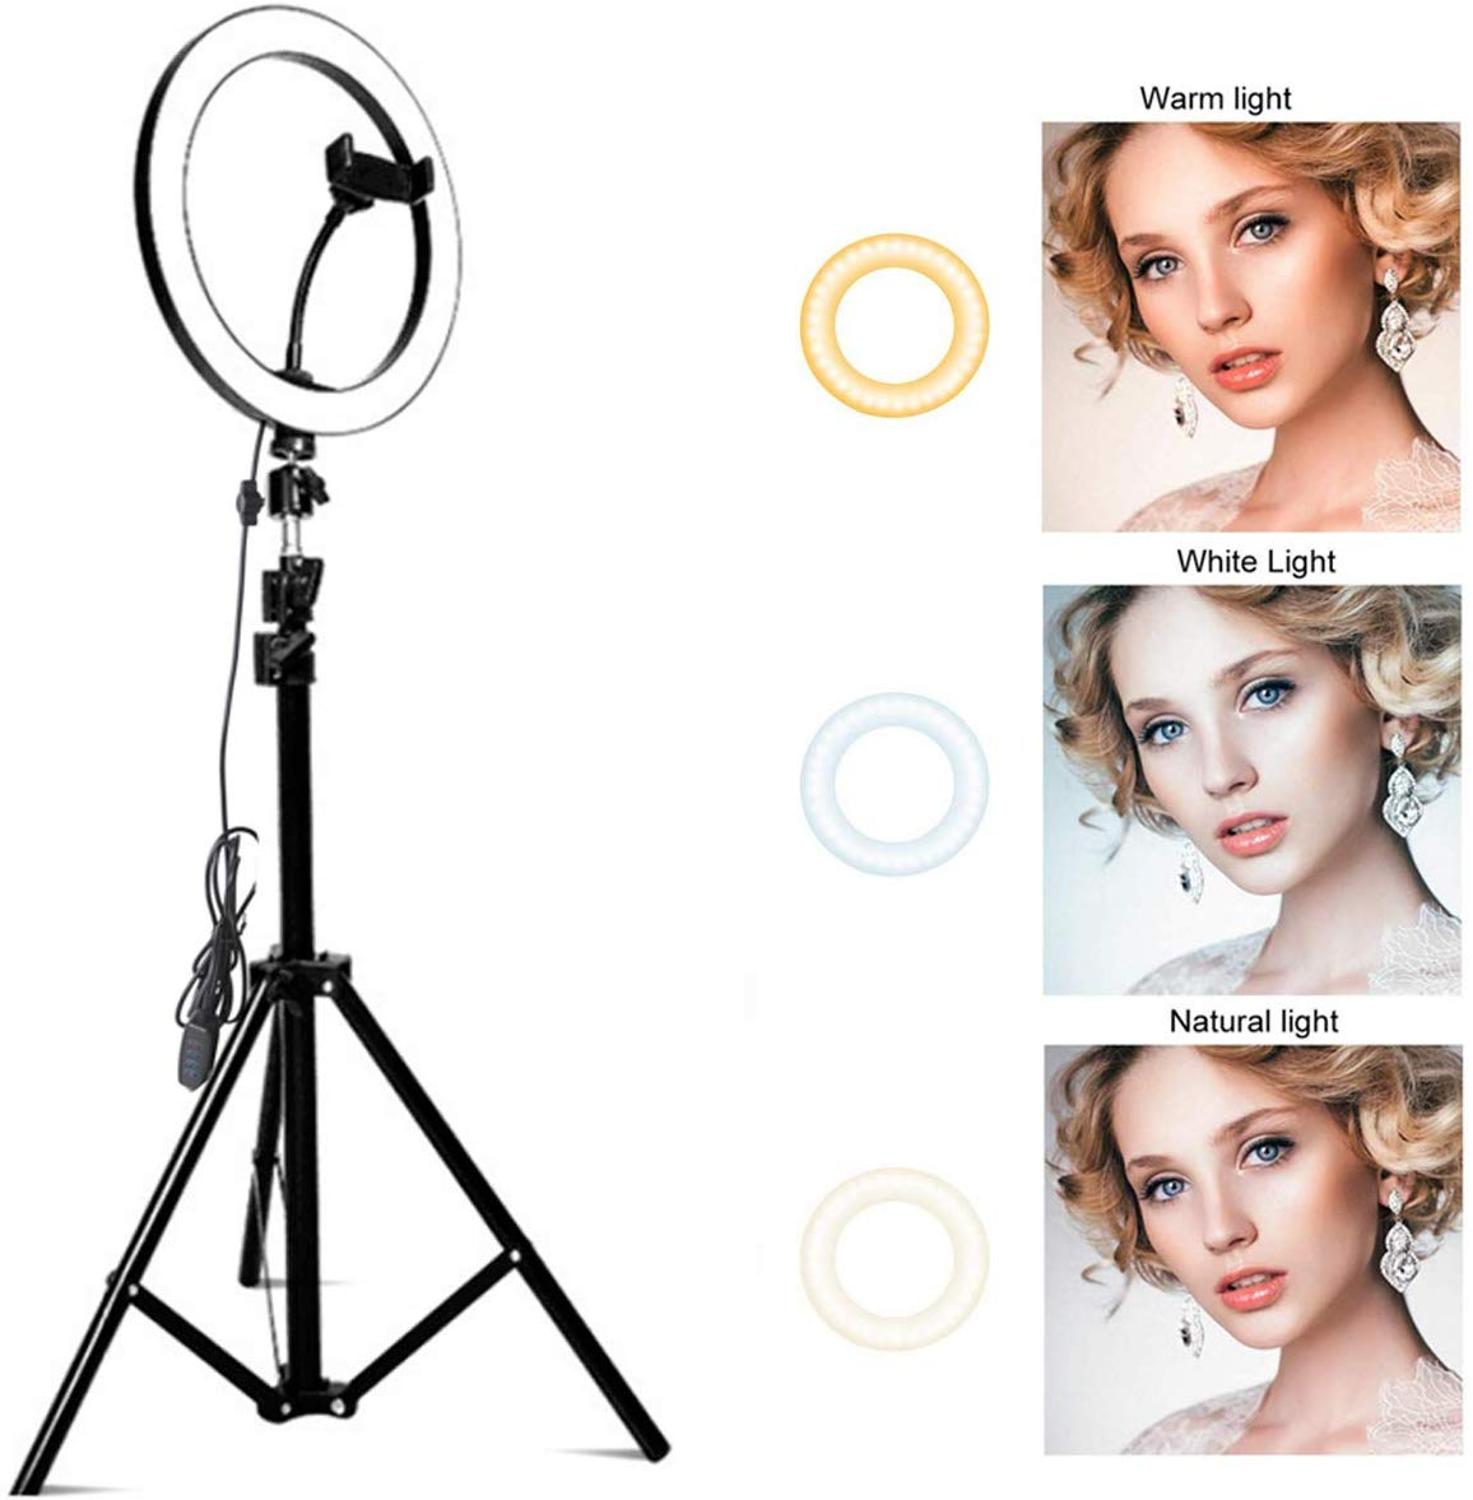 Zayex Video Light Dimmable LED Selfie Ring Light USB Ring Lamp Photography Light With Phone Holder For Makeup Youtube